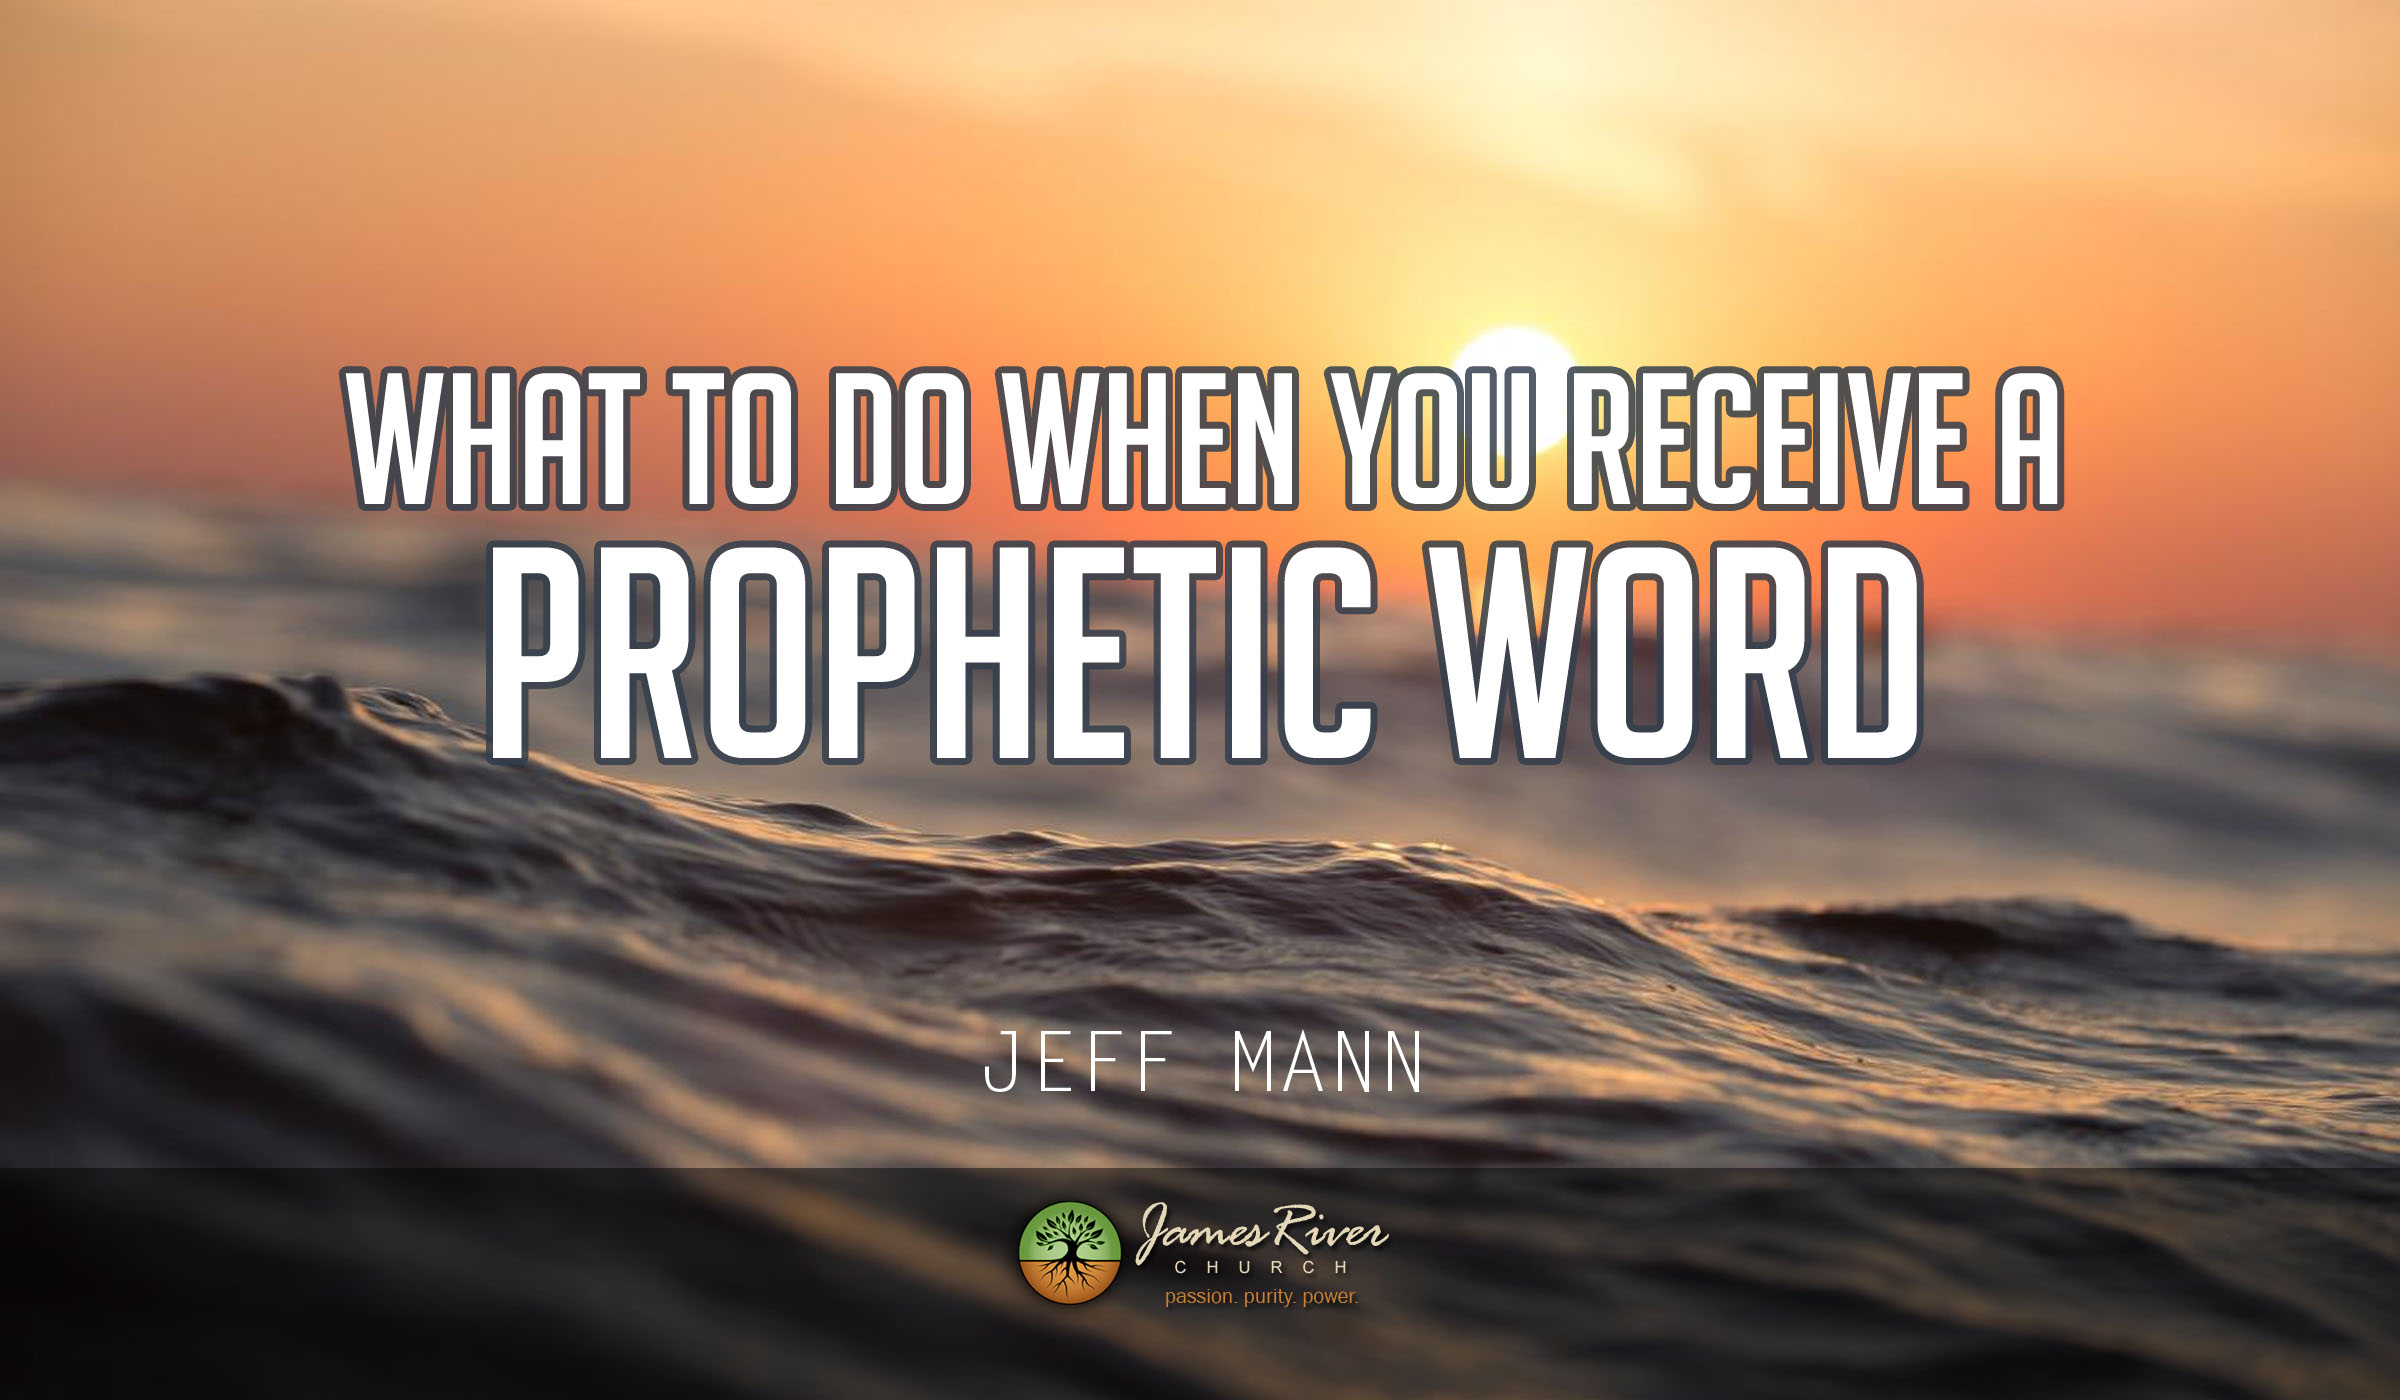 What To Do When You Receive a Prophetic Word